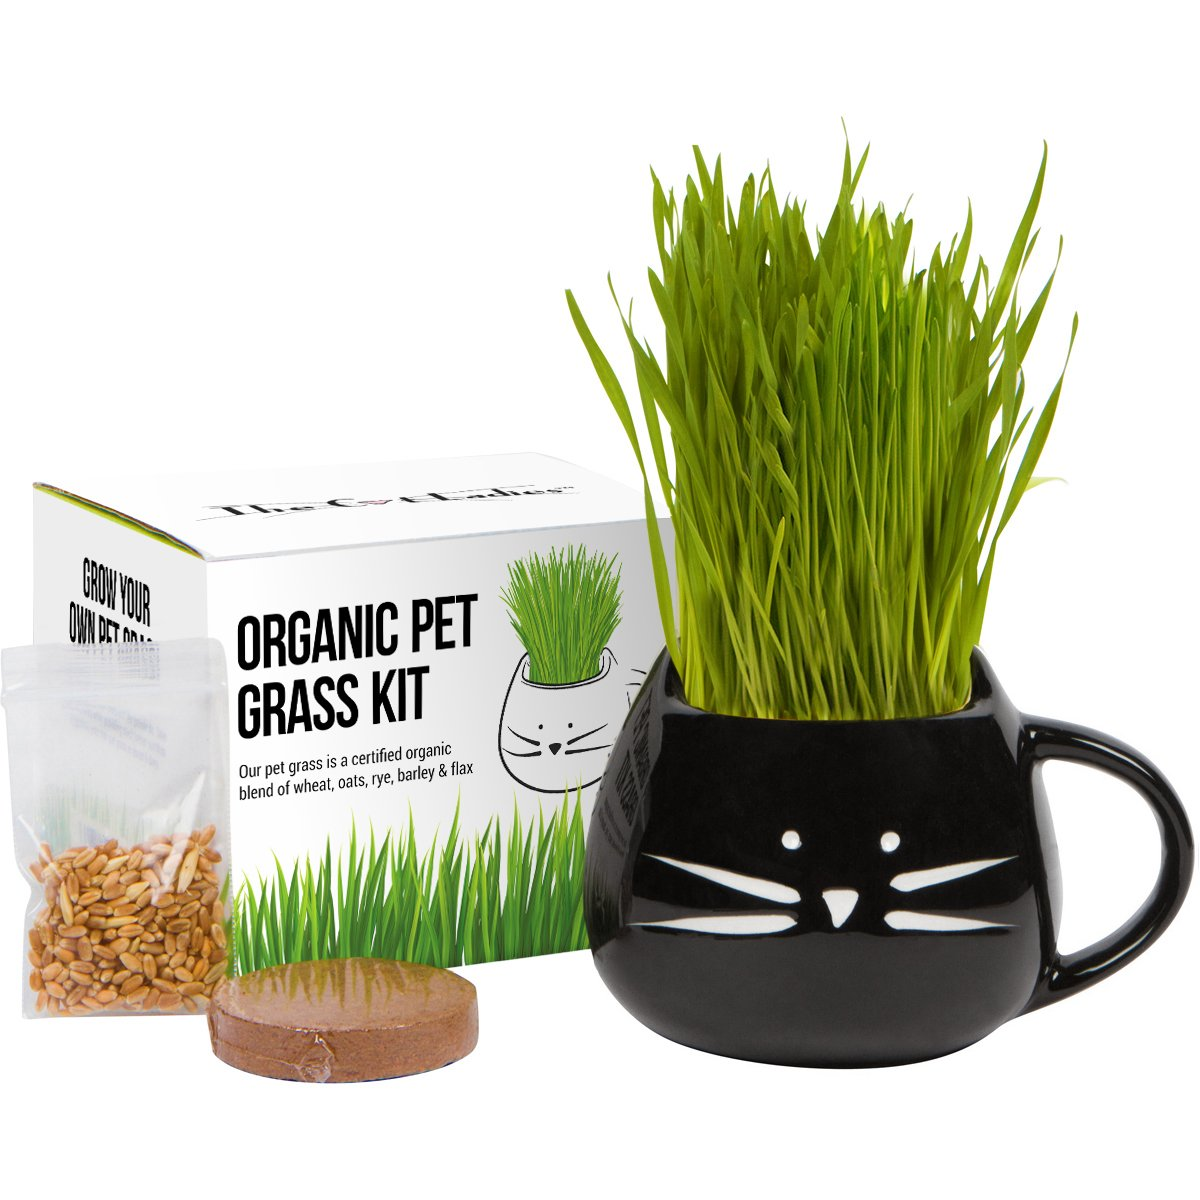 Organic cat grass growing kit with organic seed mix, organic soil and cat planter. Great gift for mom & makes a great Mothers Day Gift. Natural hairball control, remedy for cats. Natural digestive aid